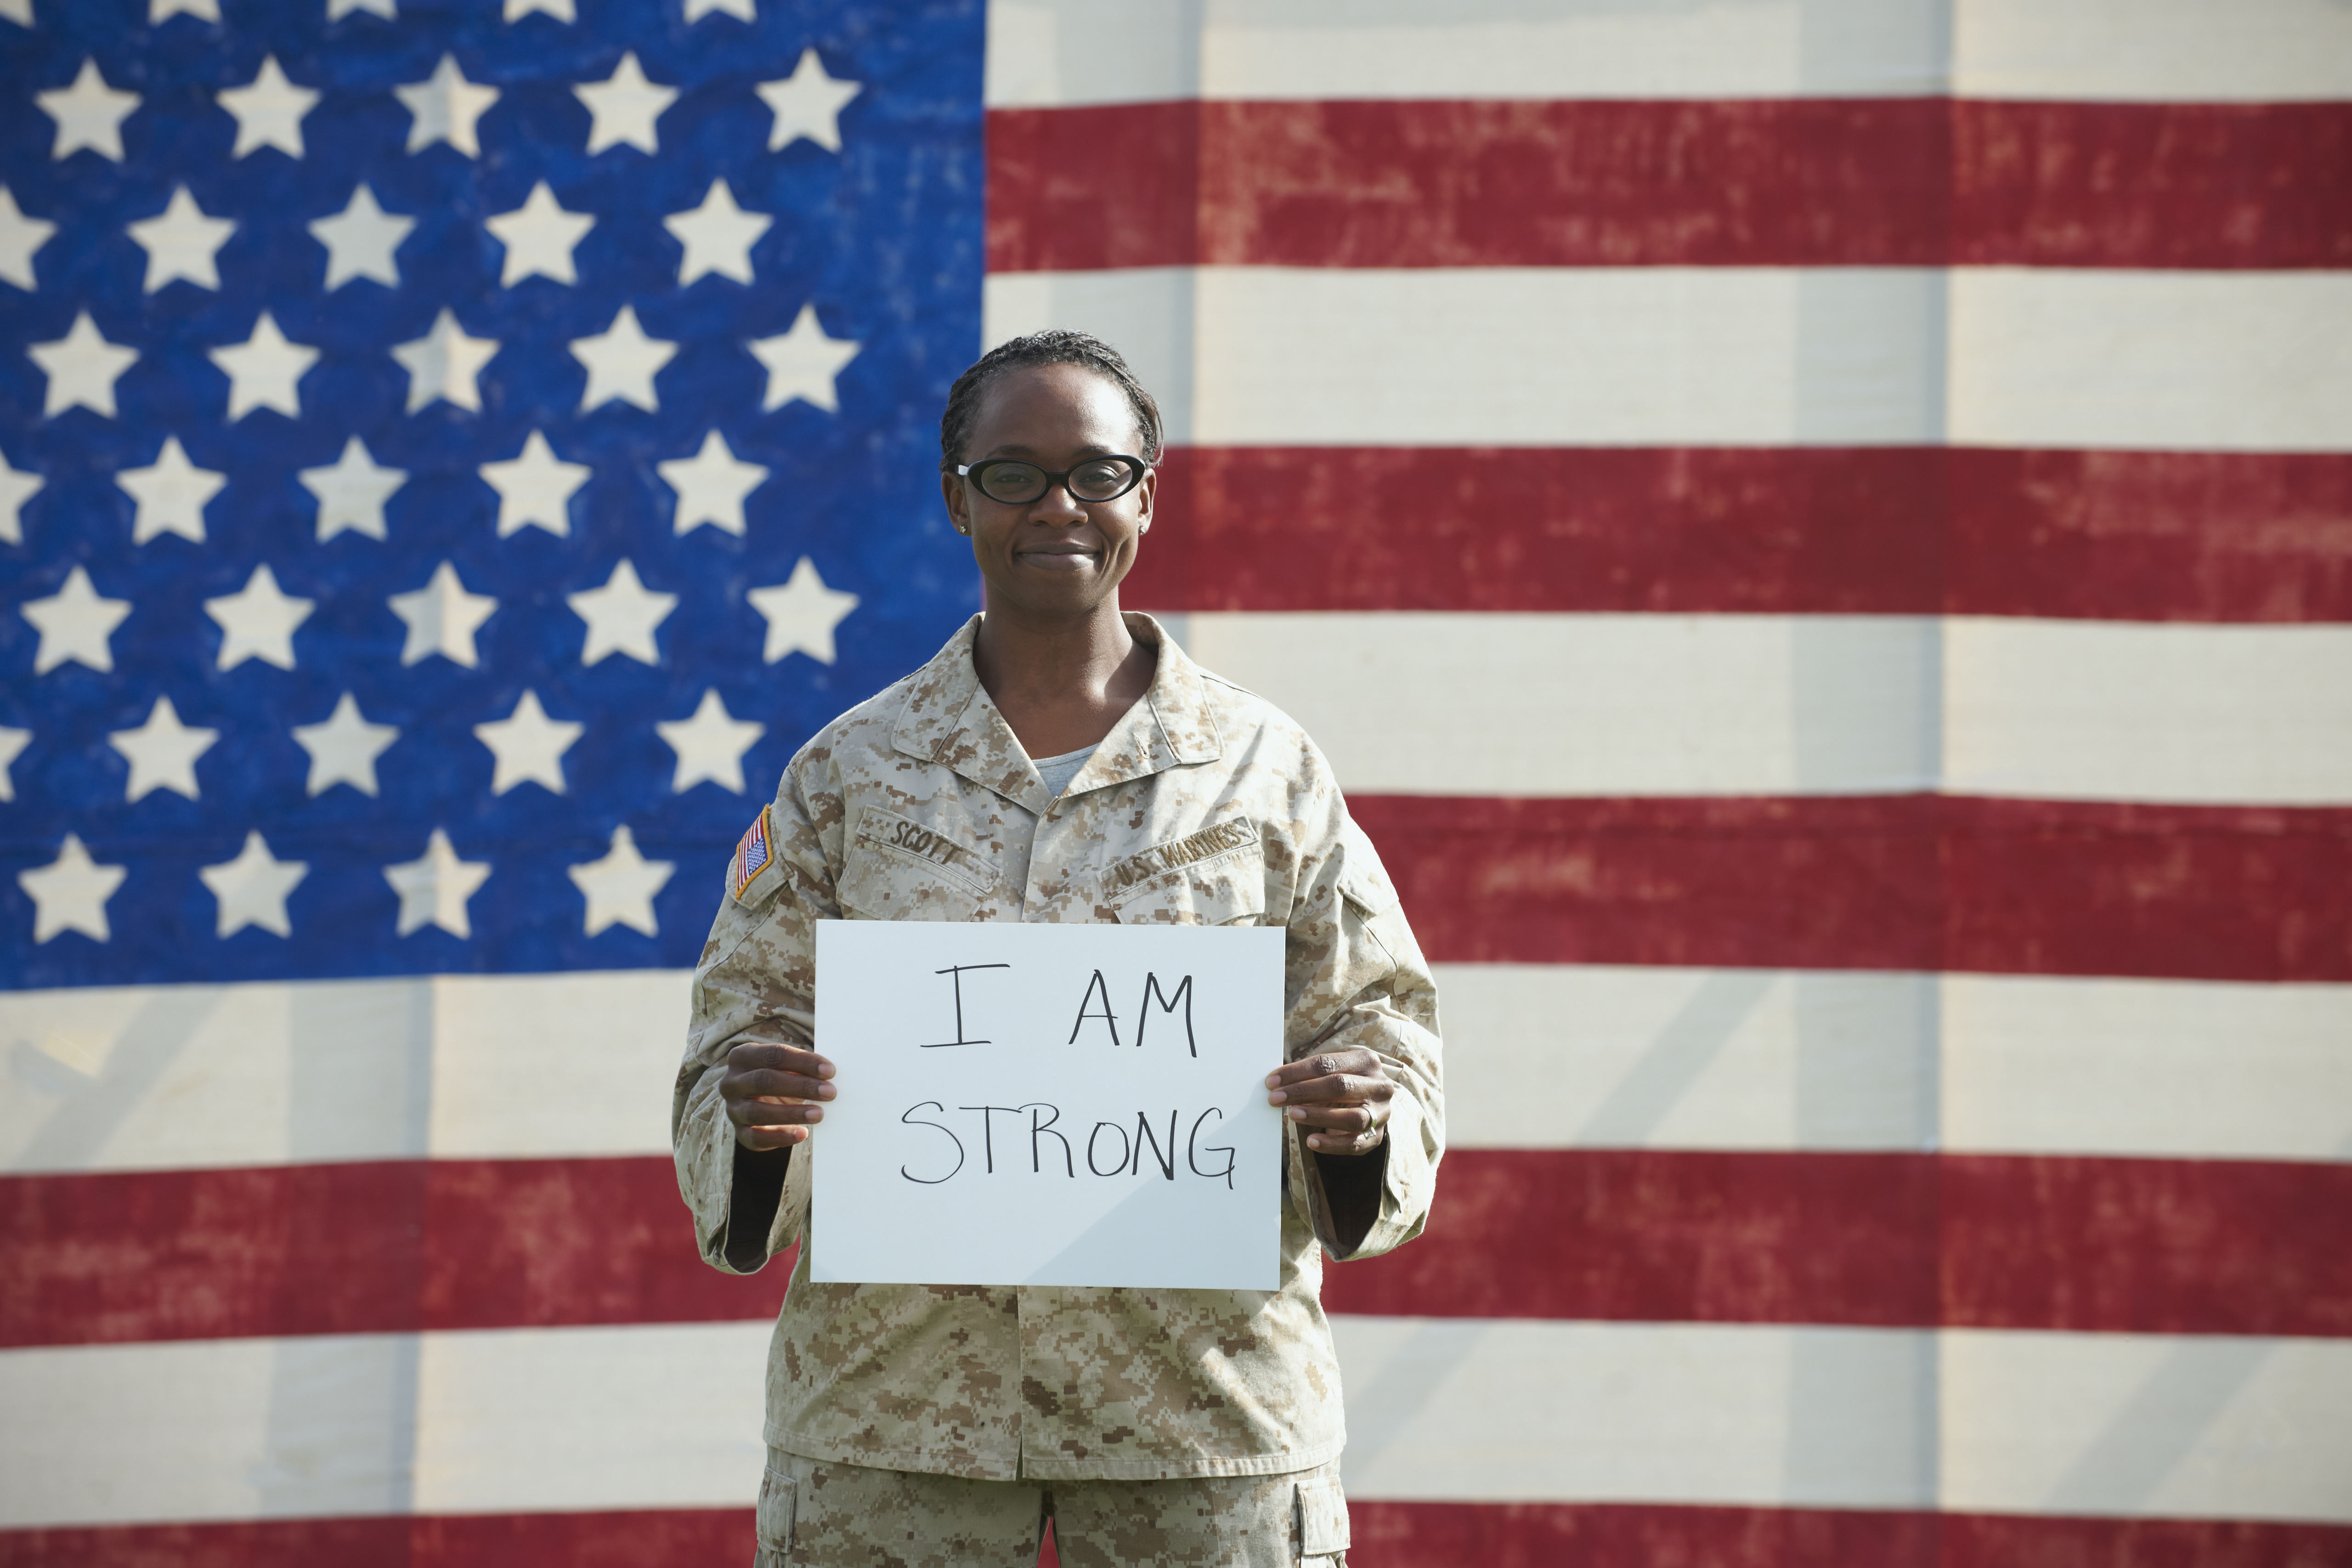 Black soldier holding I am strong sign near American flag